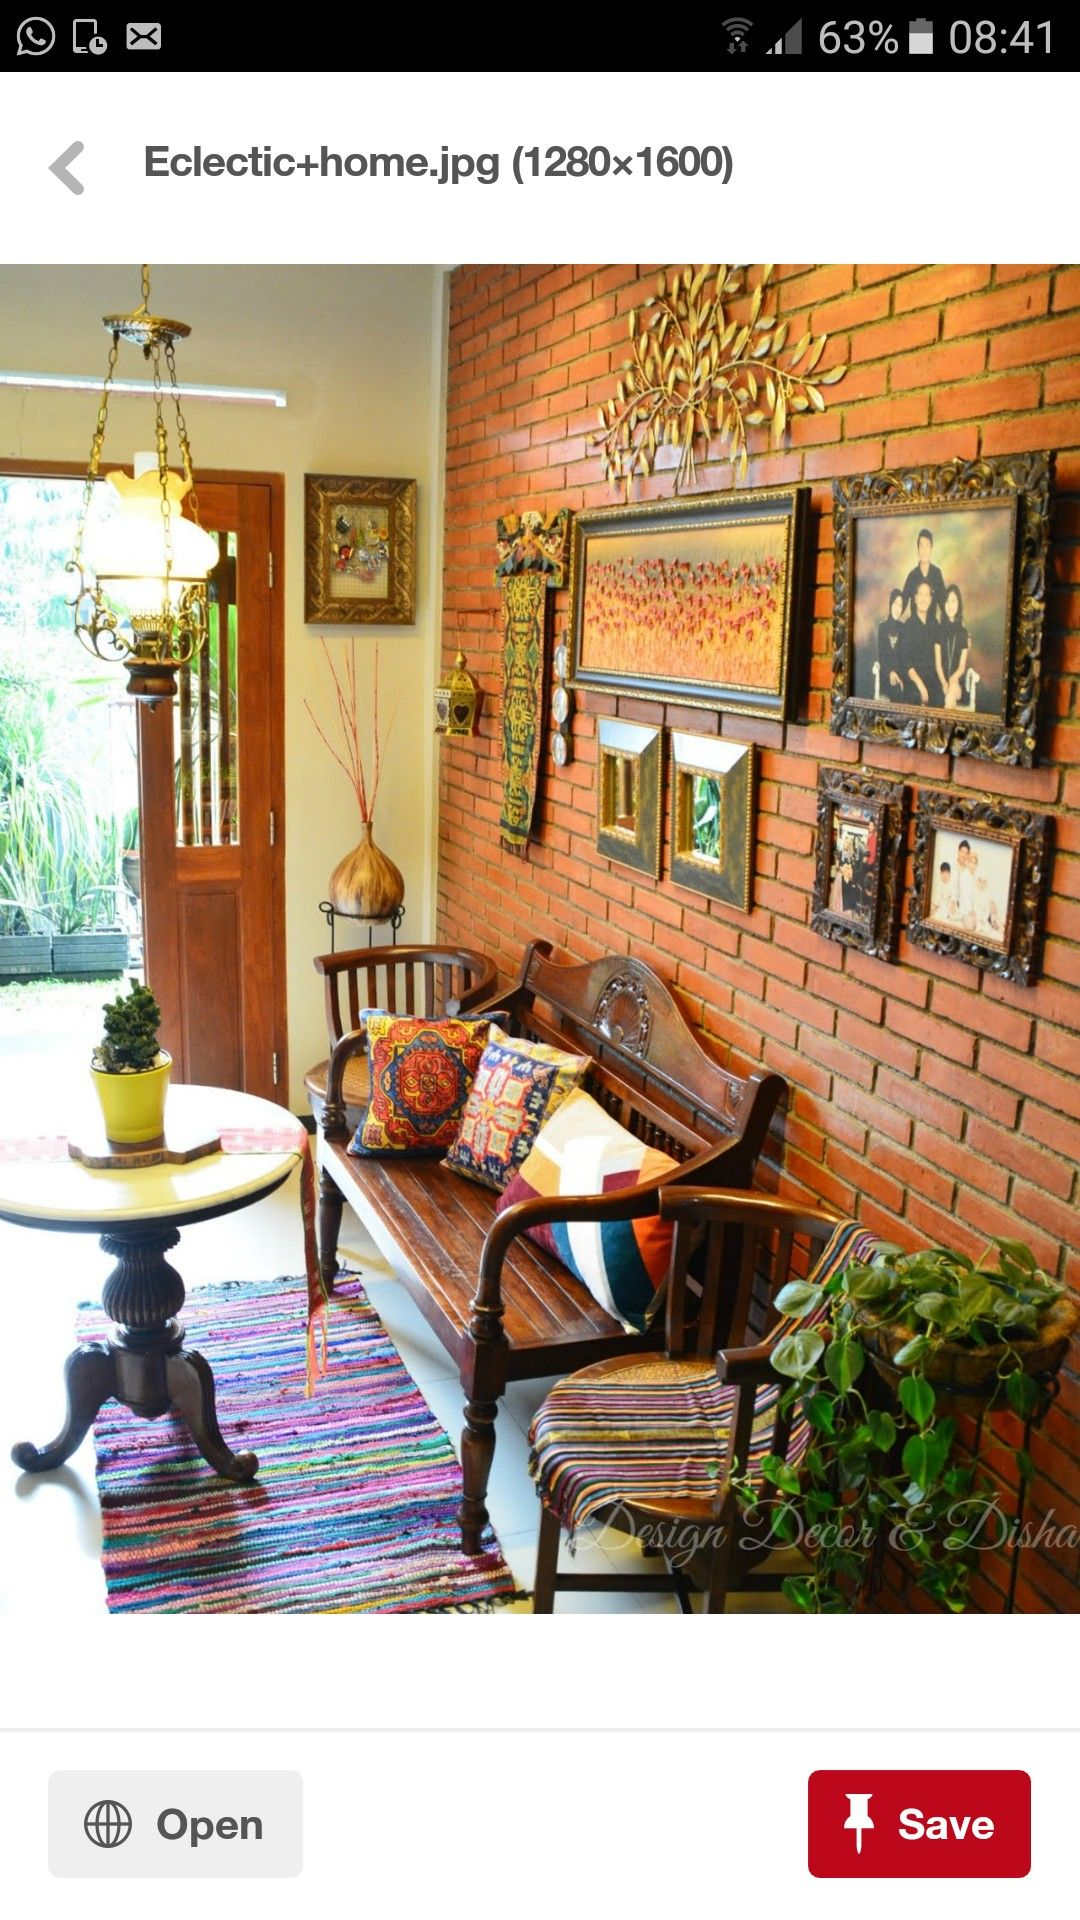 Kerala houses finals final exams also pin by knitha menon on house ideas in rh pinterest